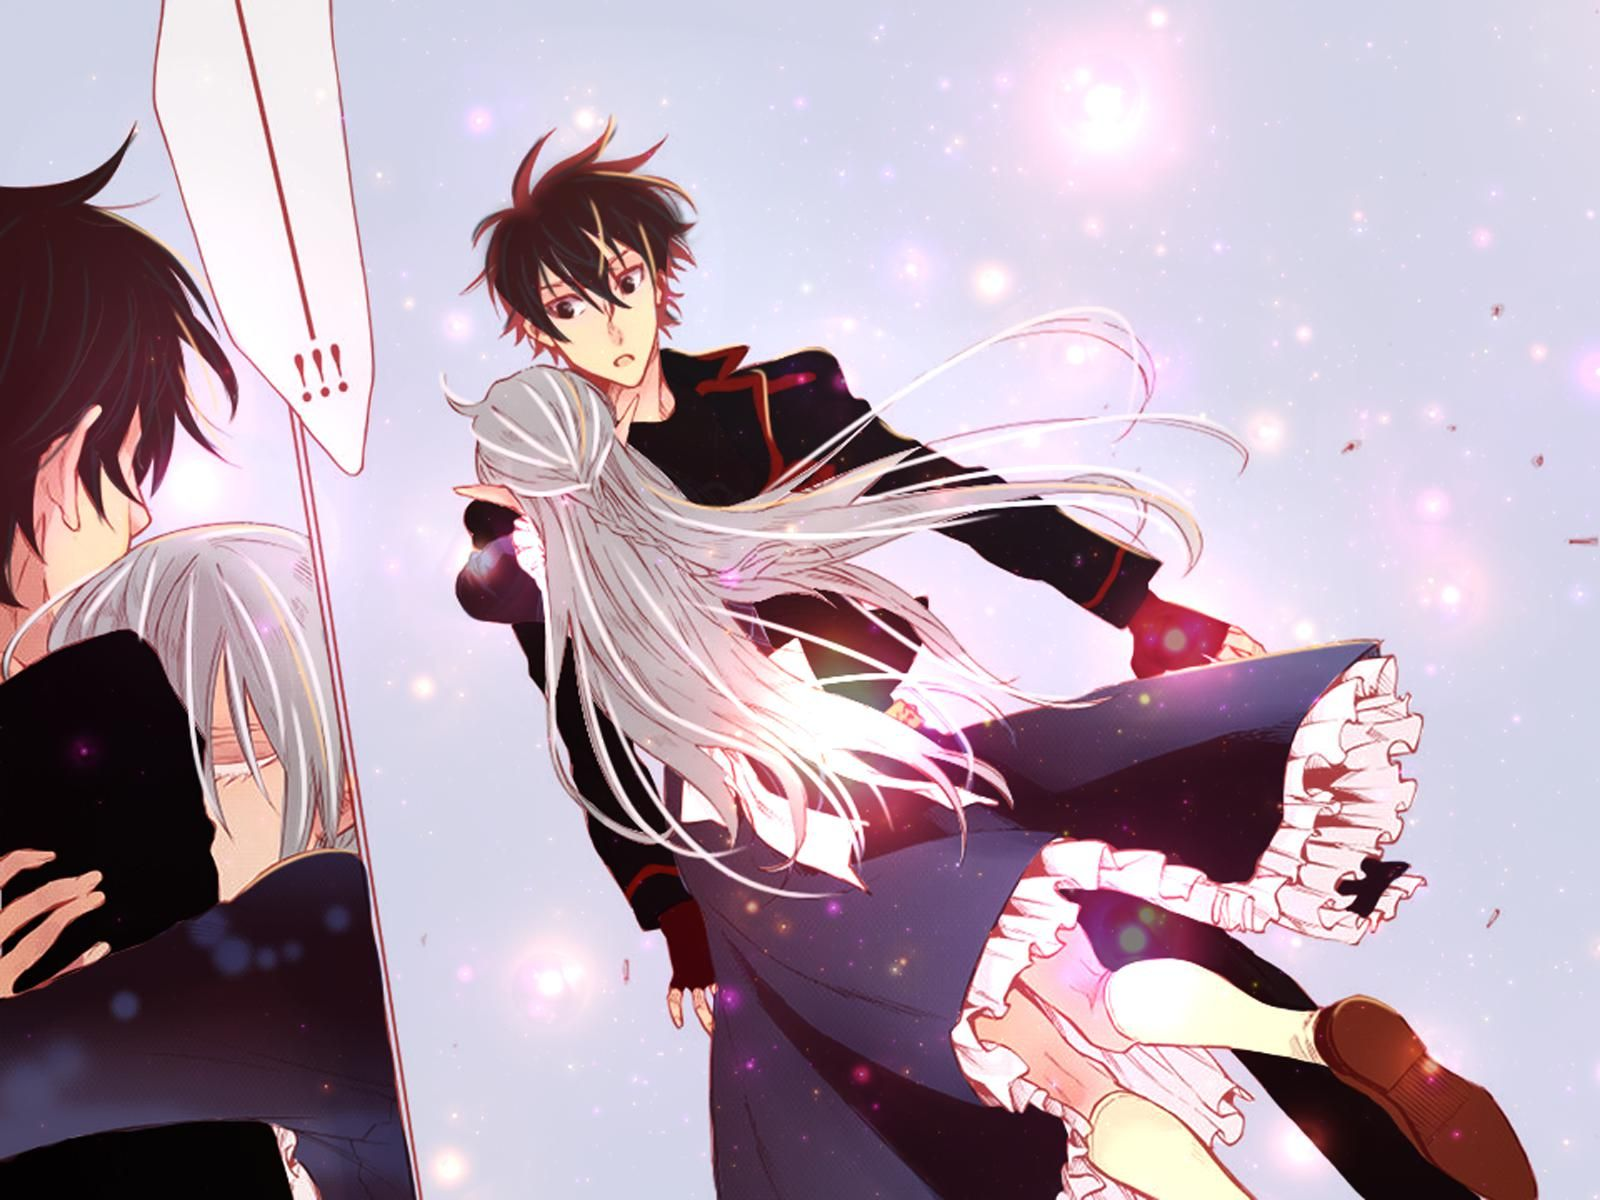 The New Gate, manwha or Manhua, good story about virtual